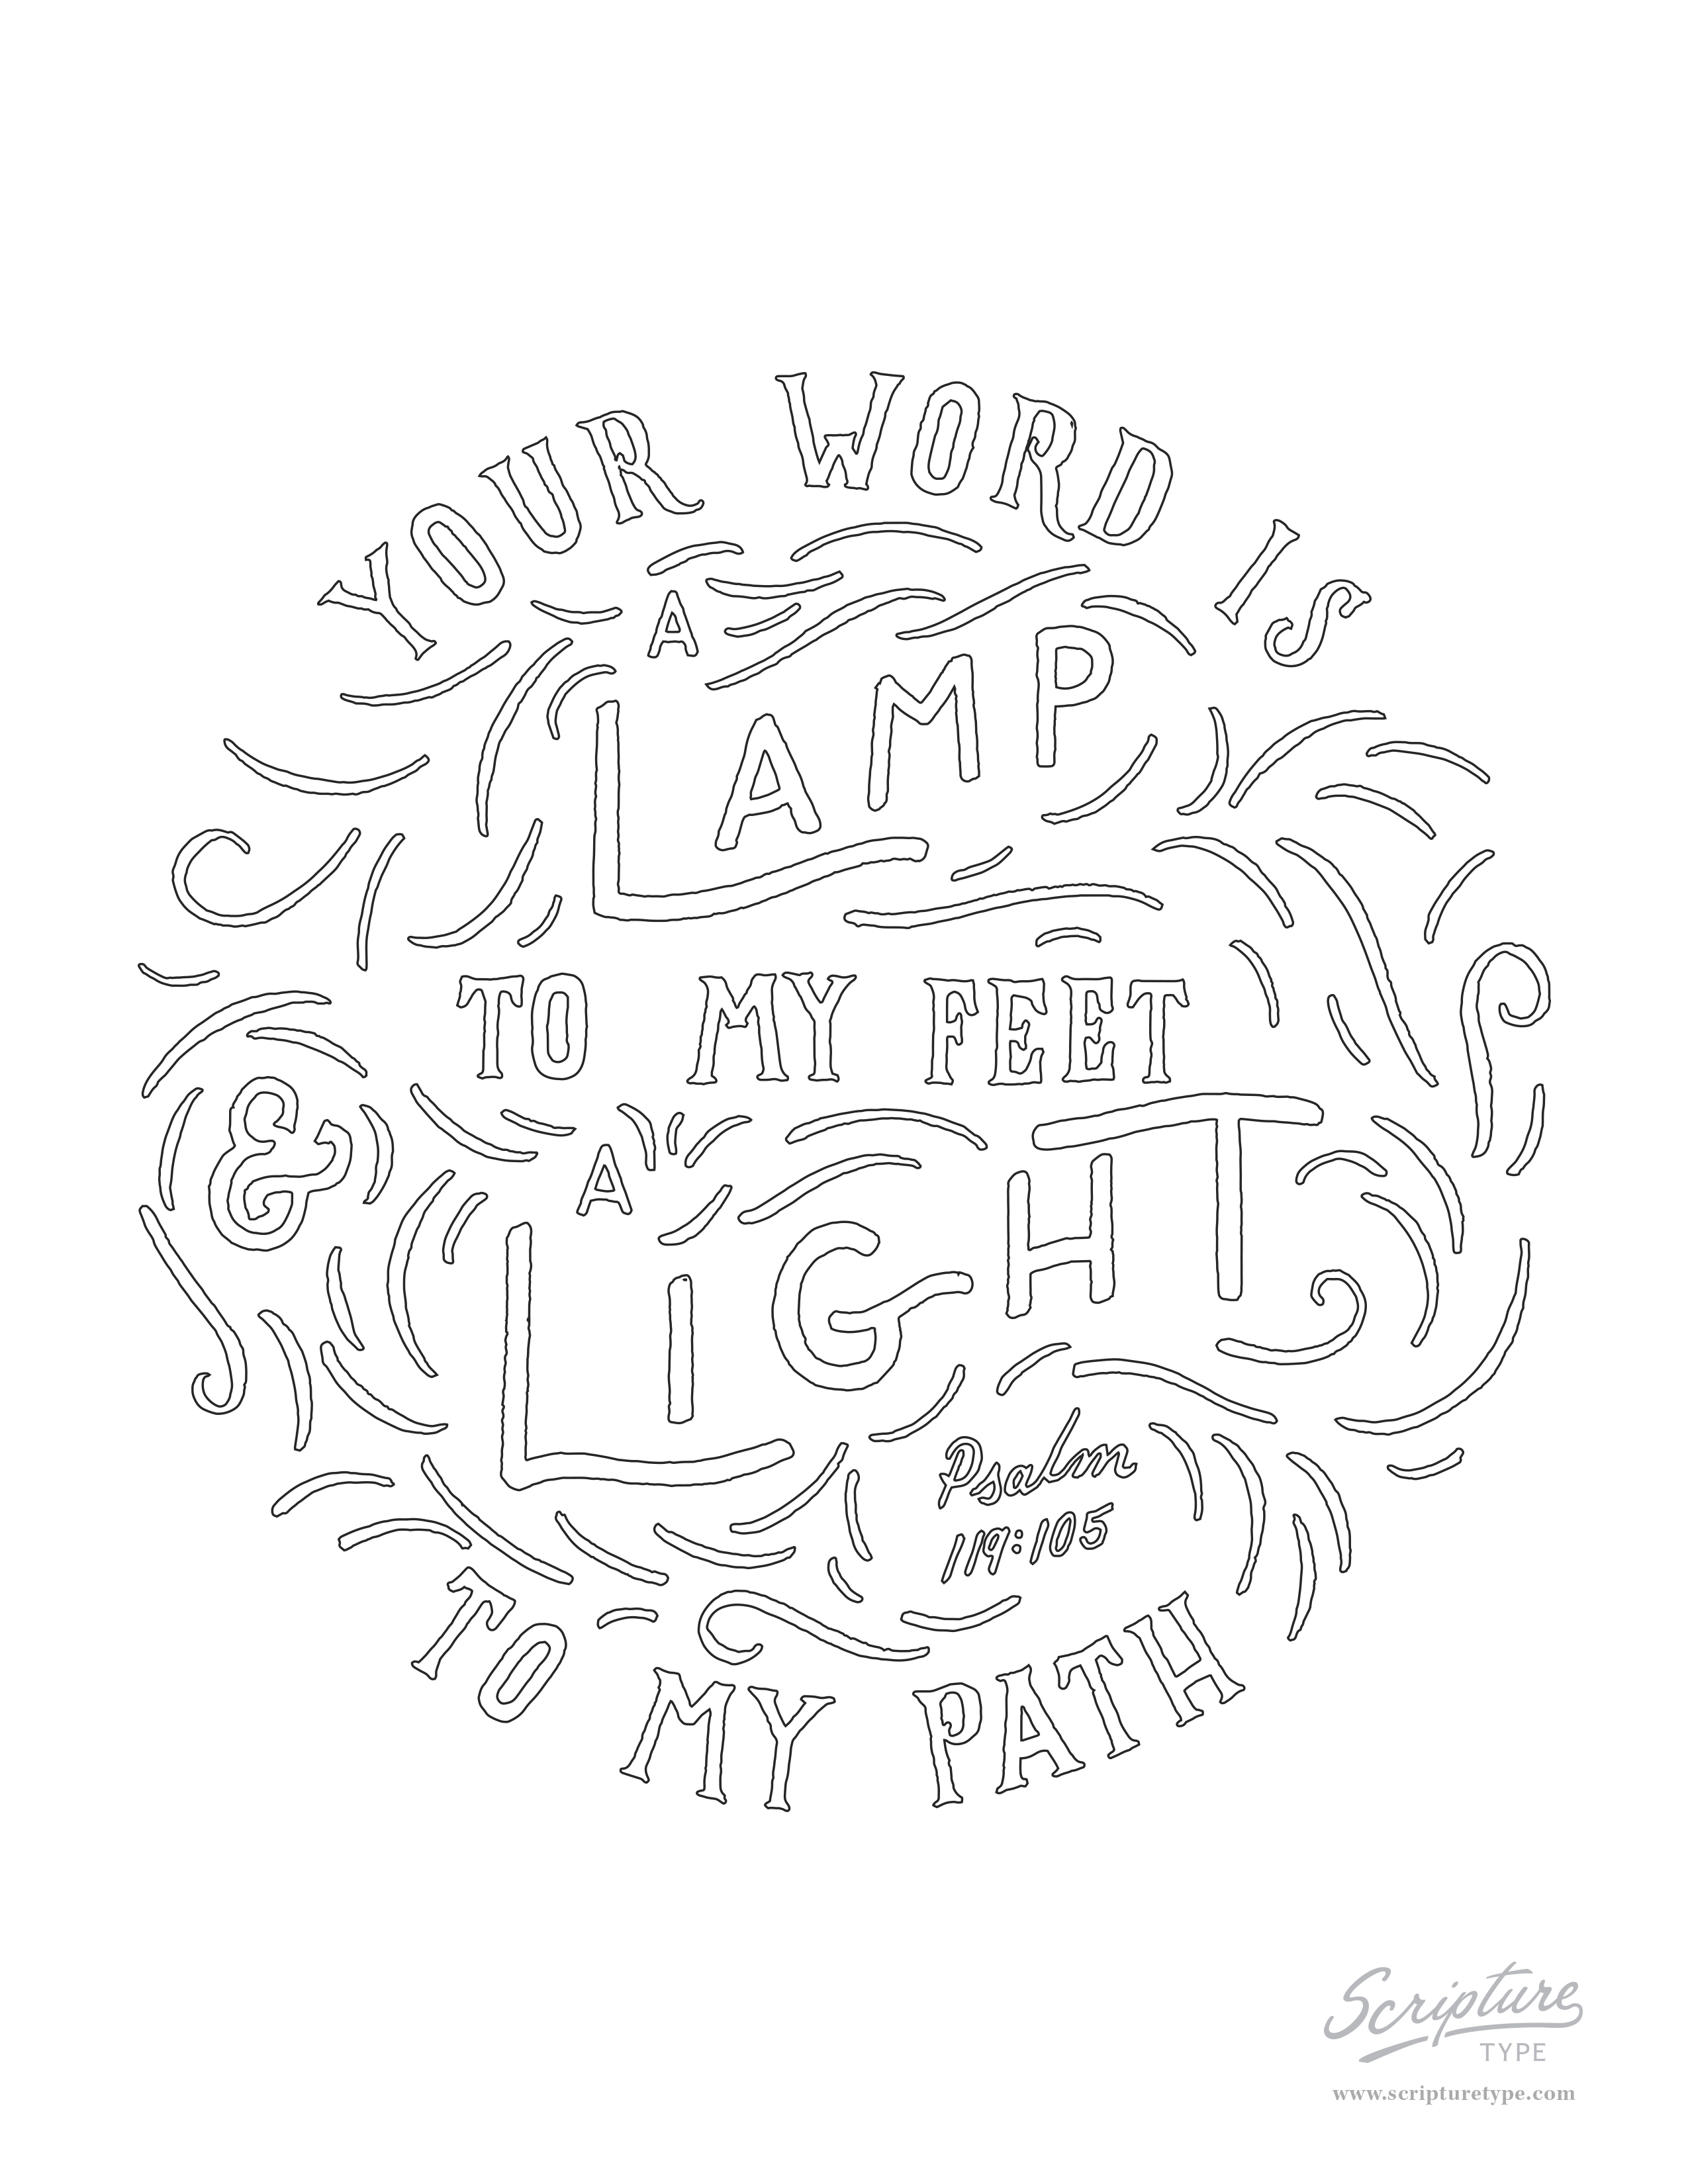 coloring pages for psalm 119 - photo#15